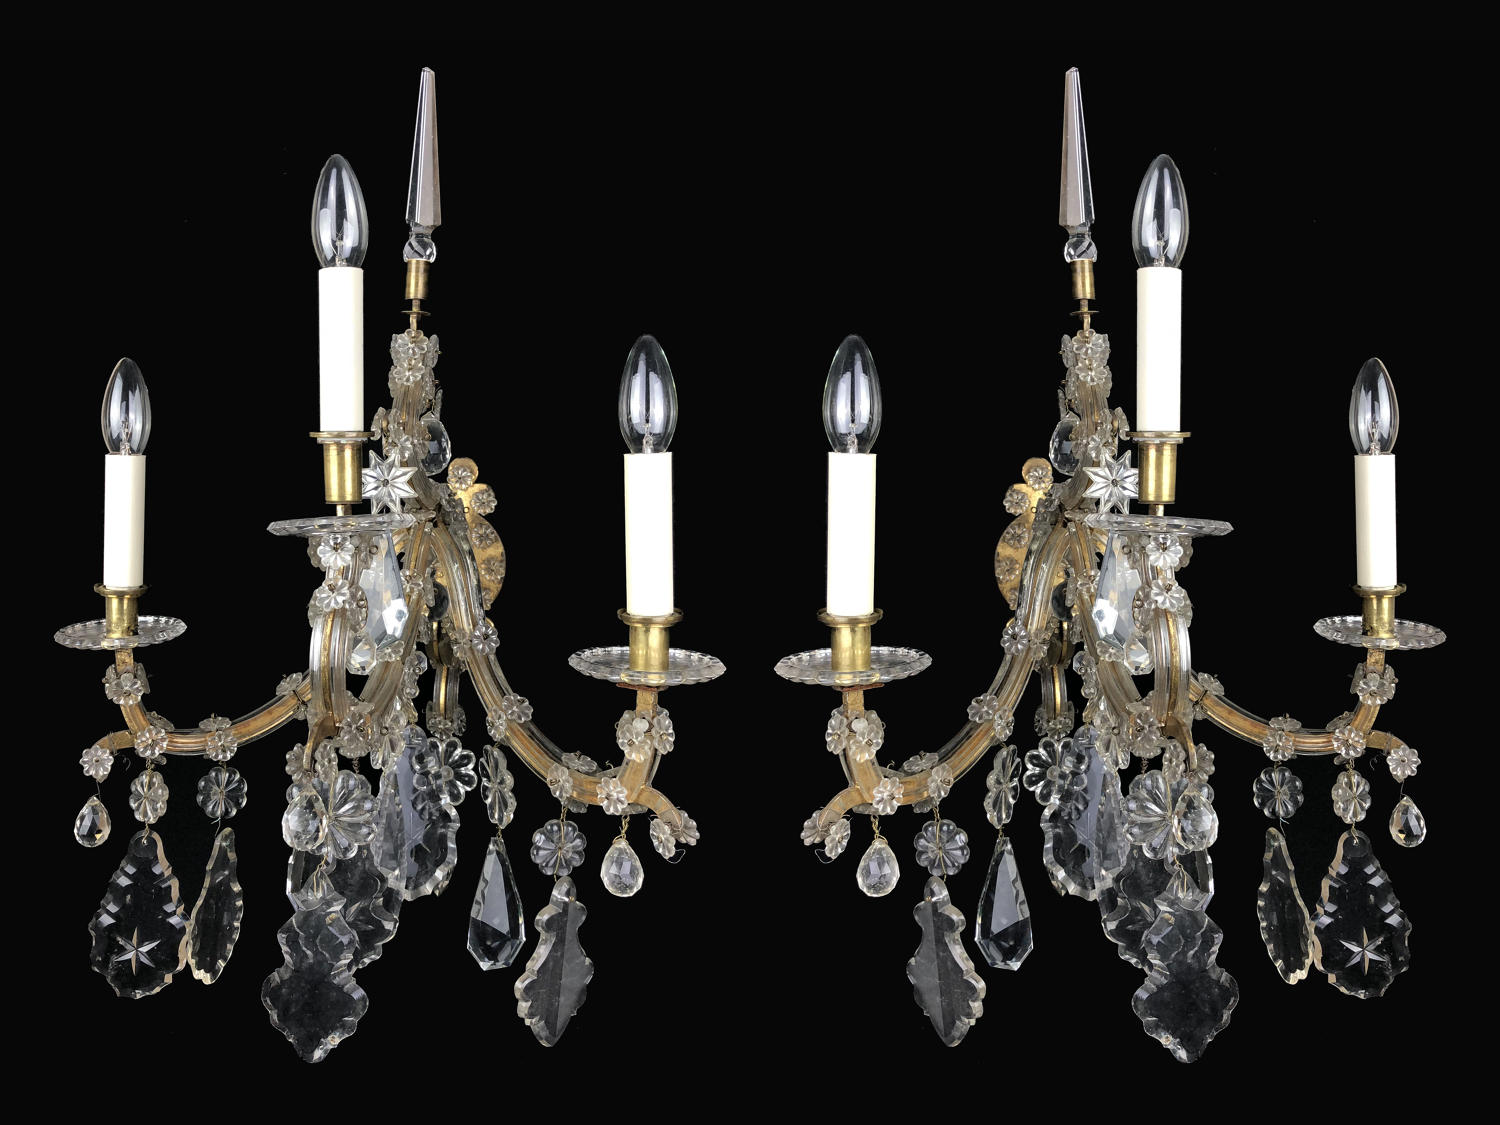 Pair of Marie Therese wall lights